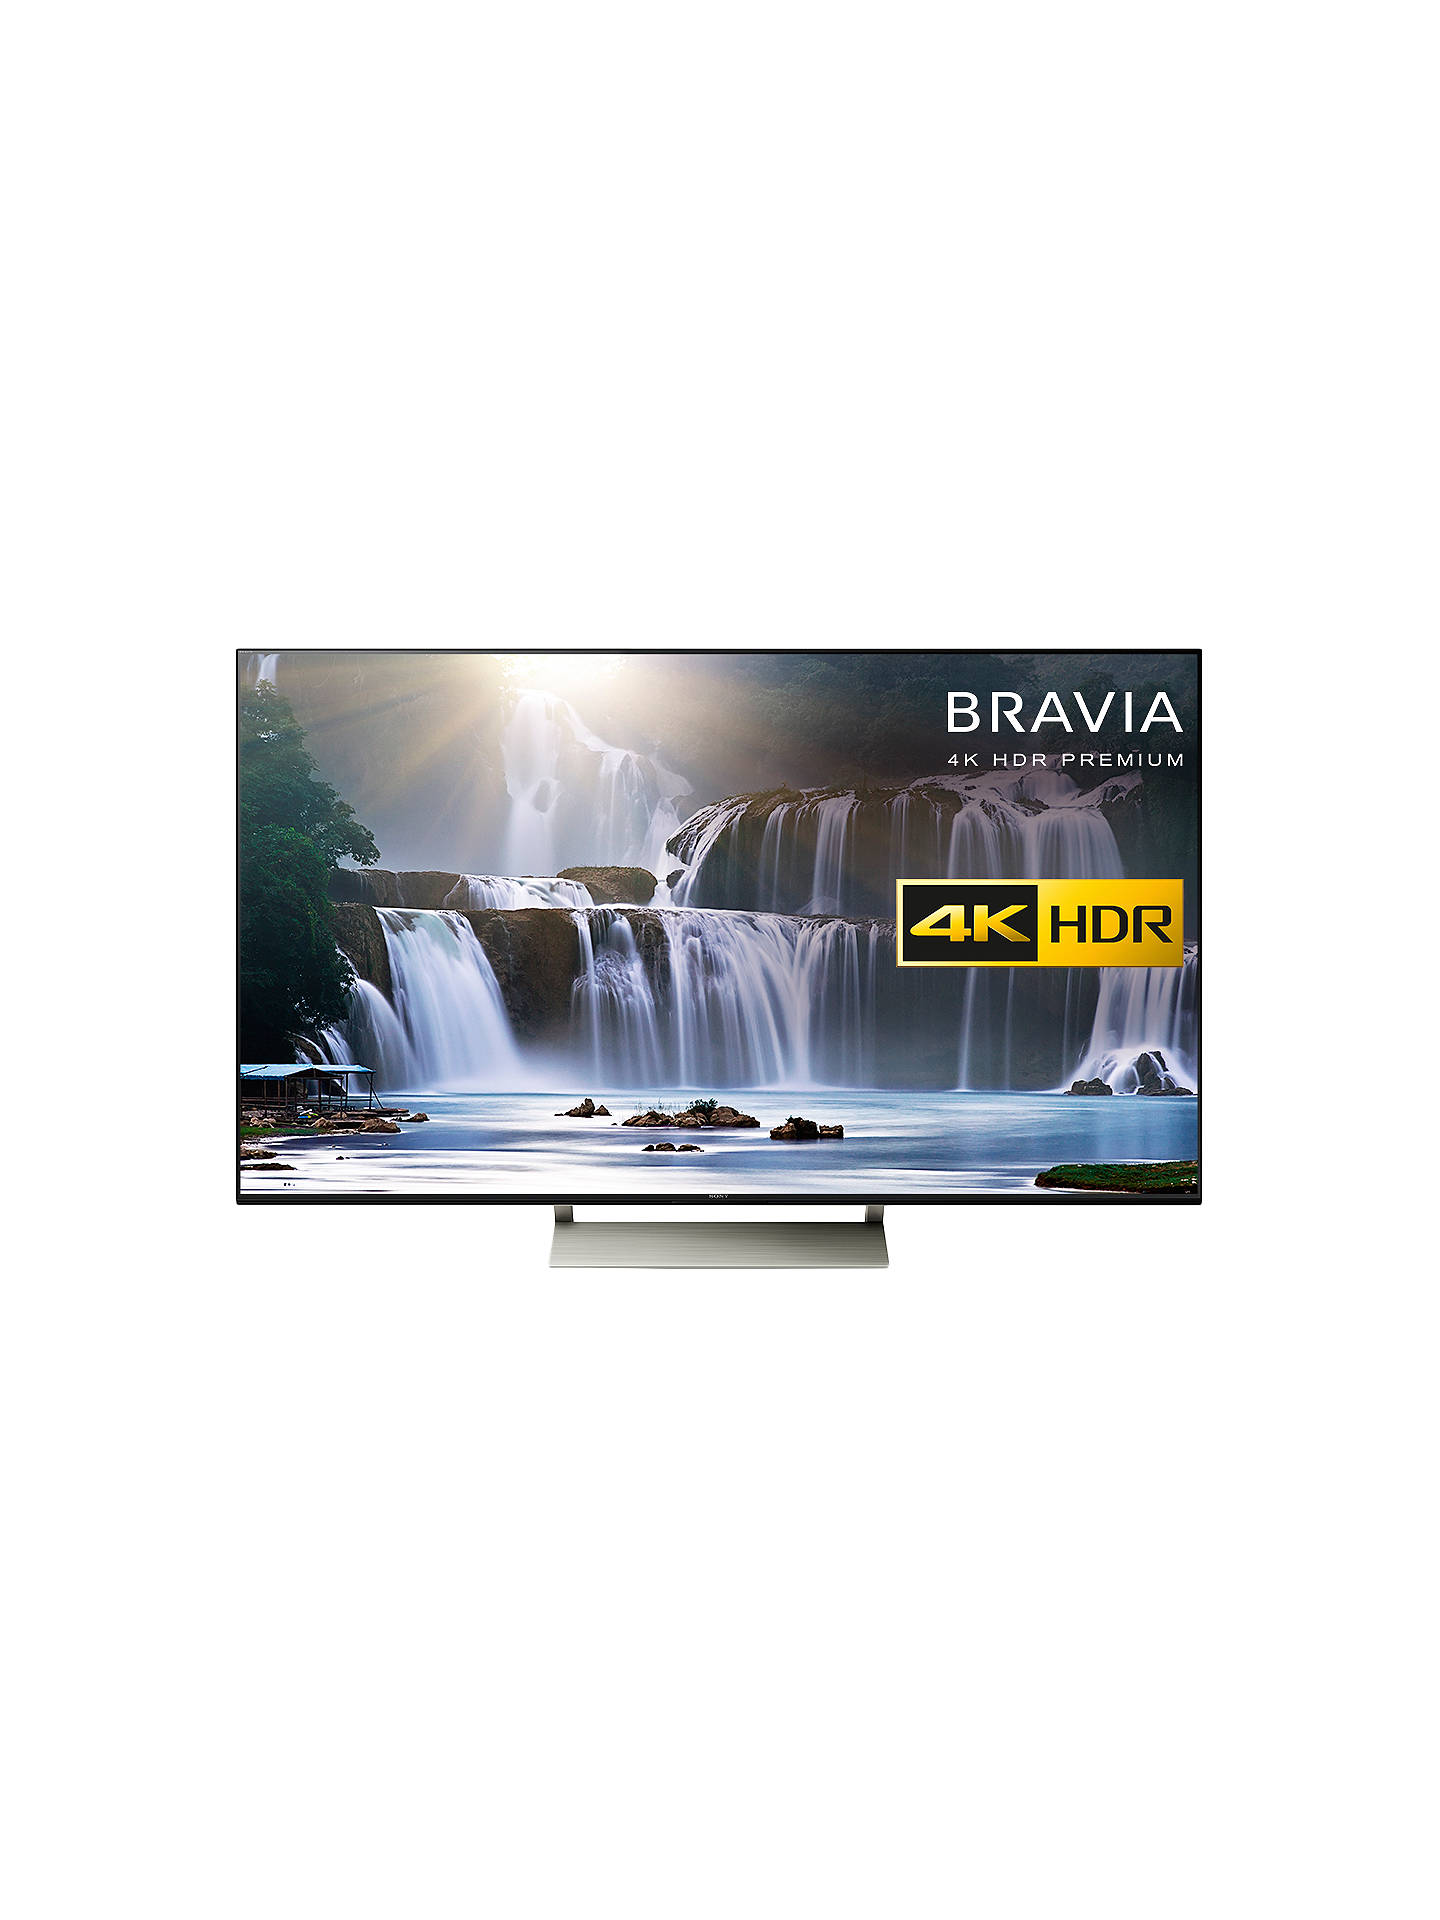 Sony Bravia KD65XE9305 LED HDR 4K Ultra HD Smart Android TV, 65